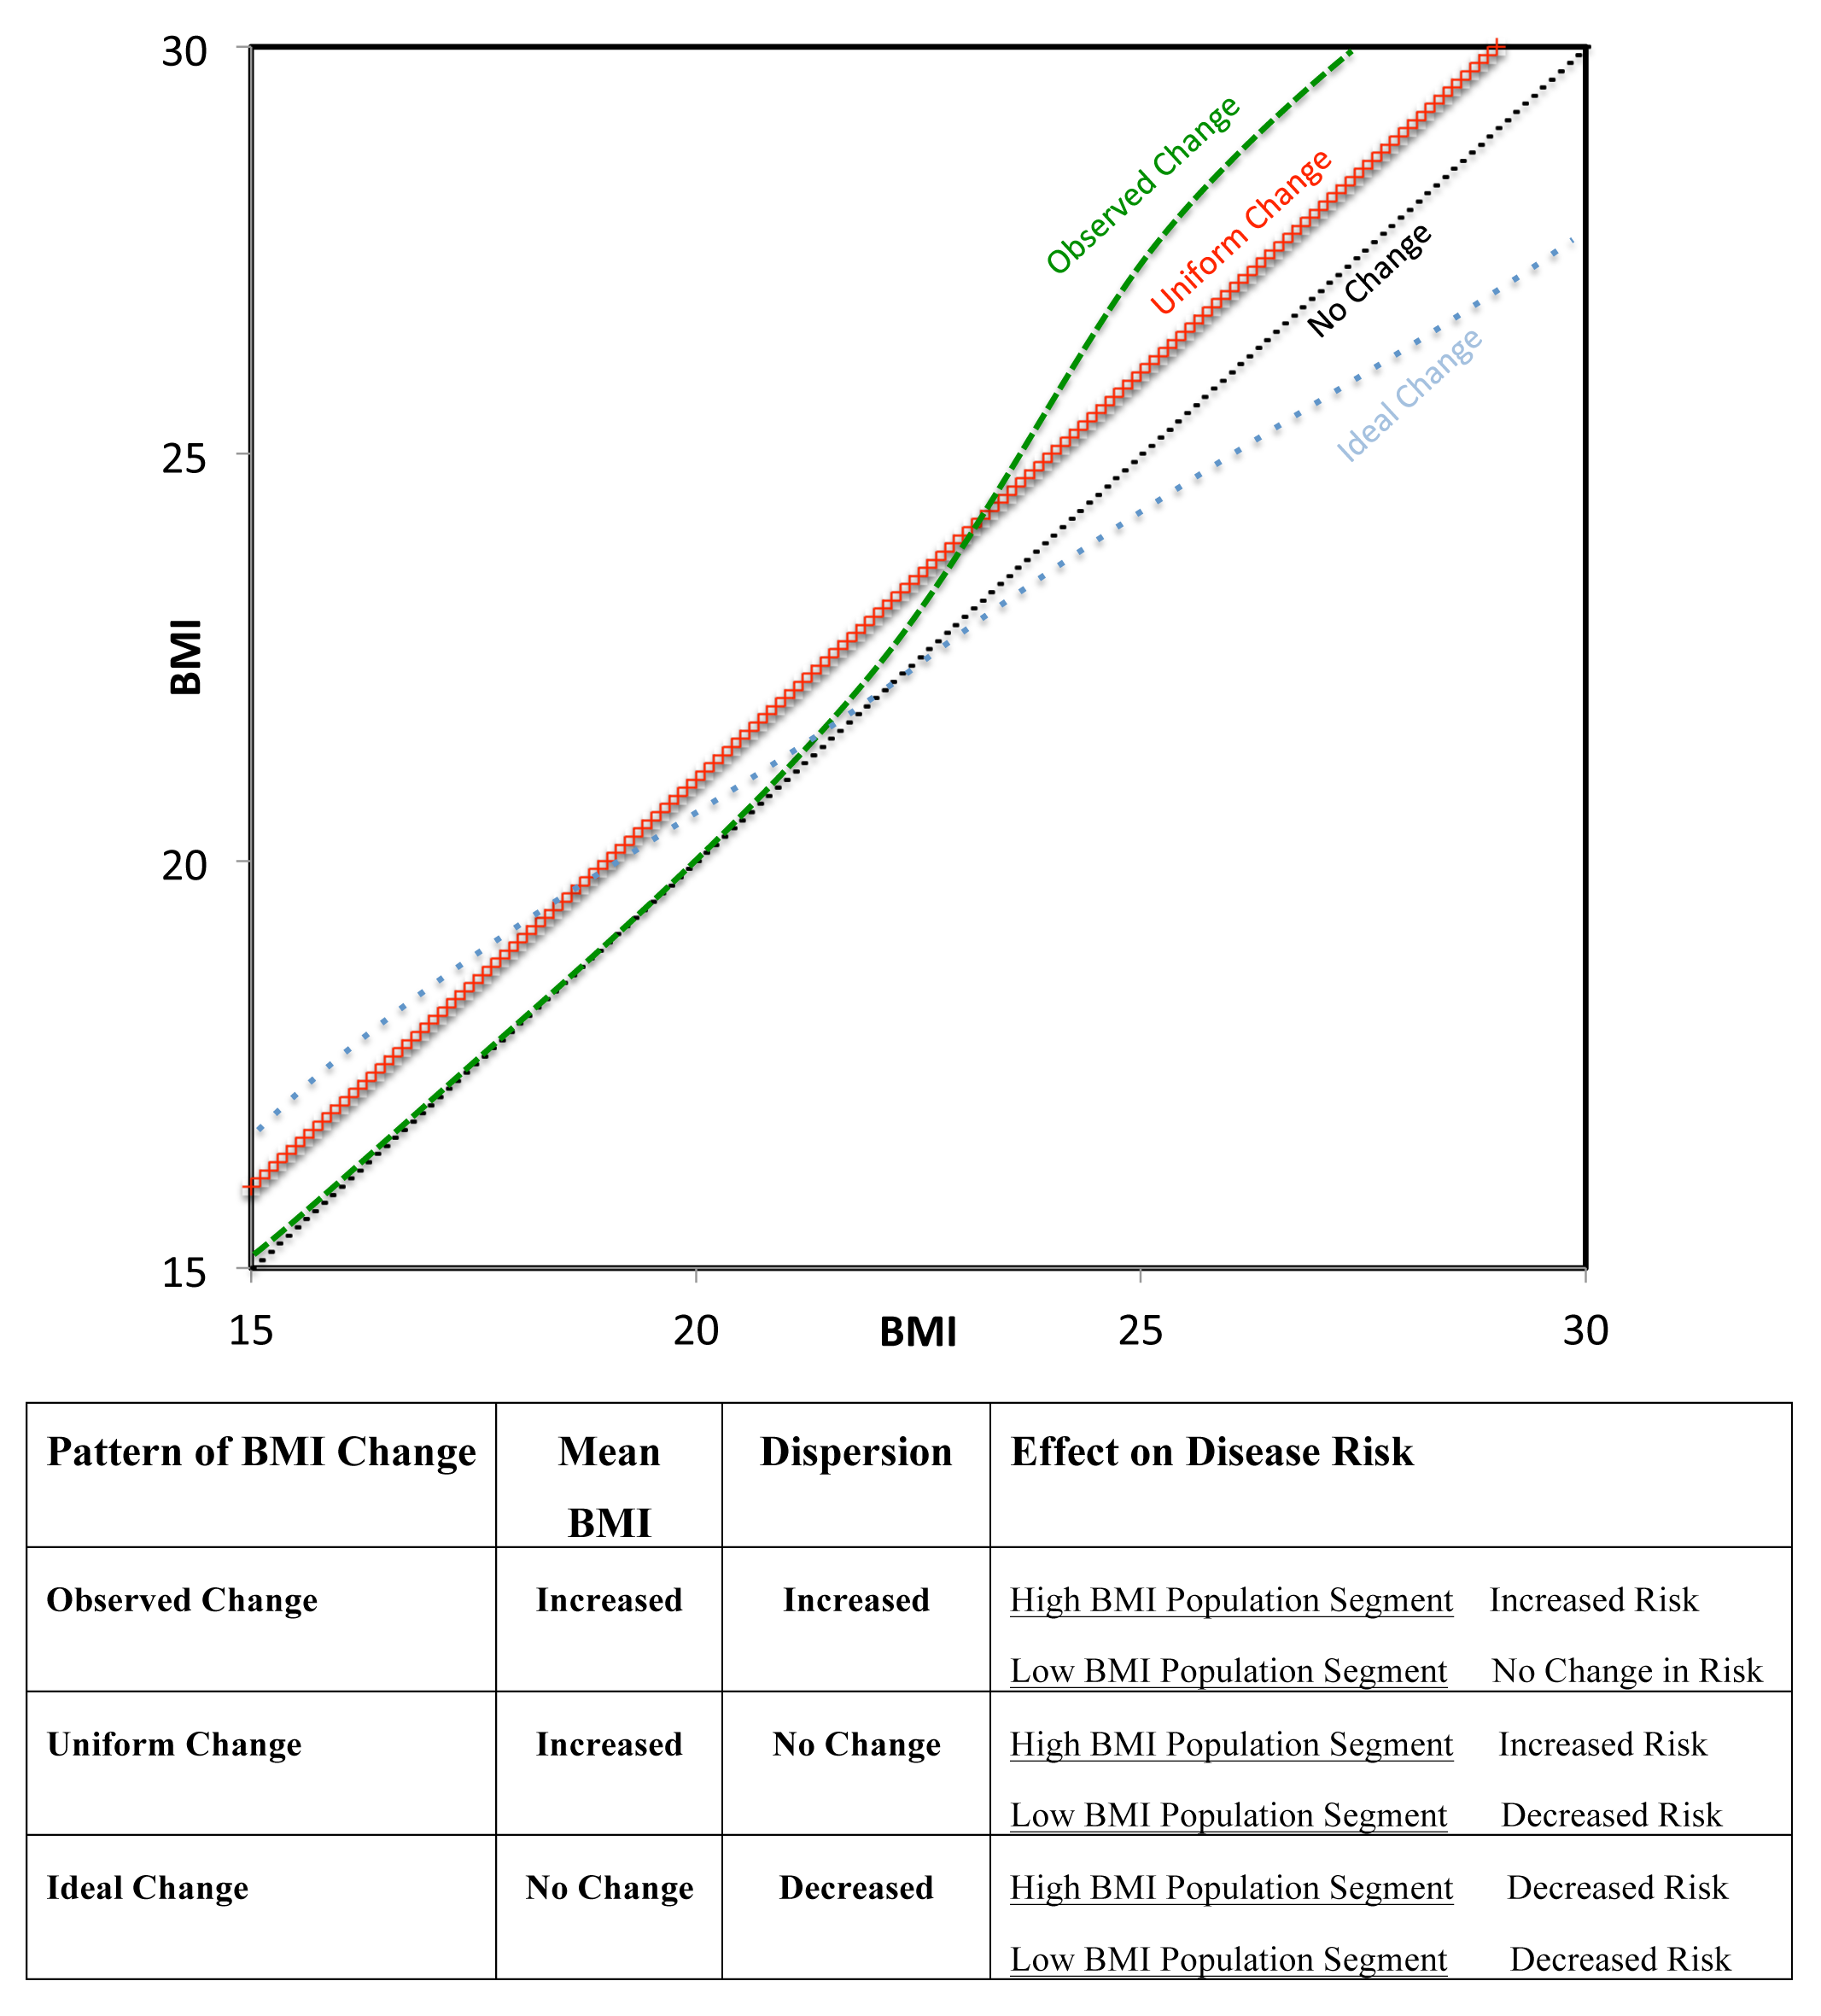 QQ plots of different models of population change in BMI over time.